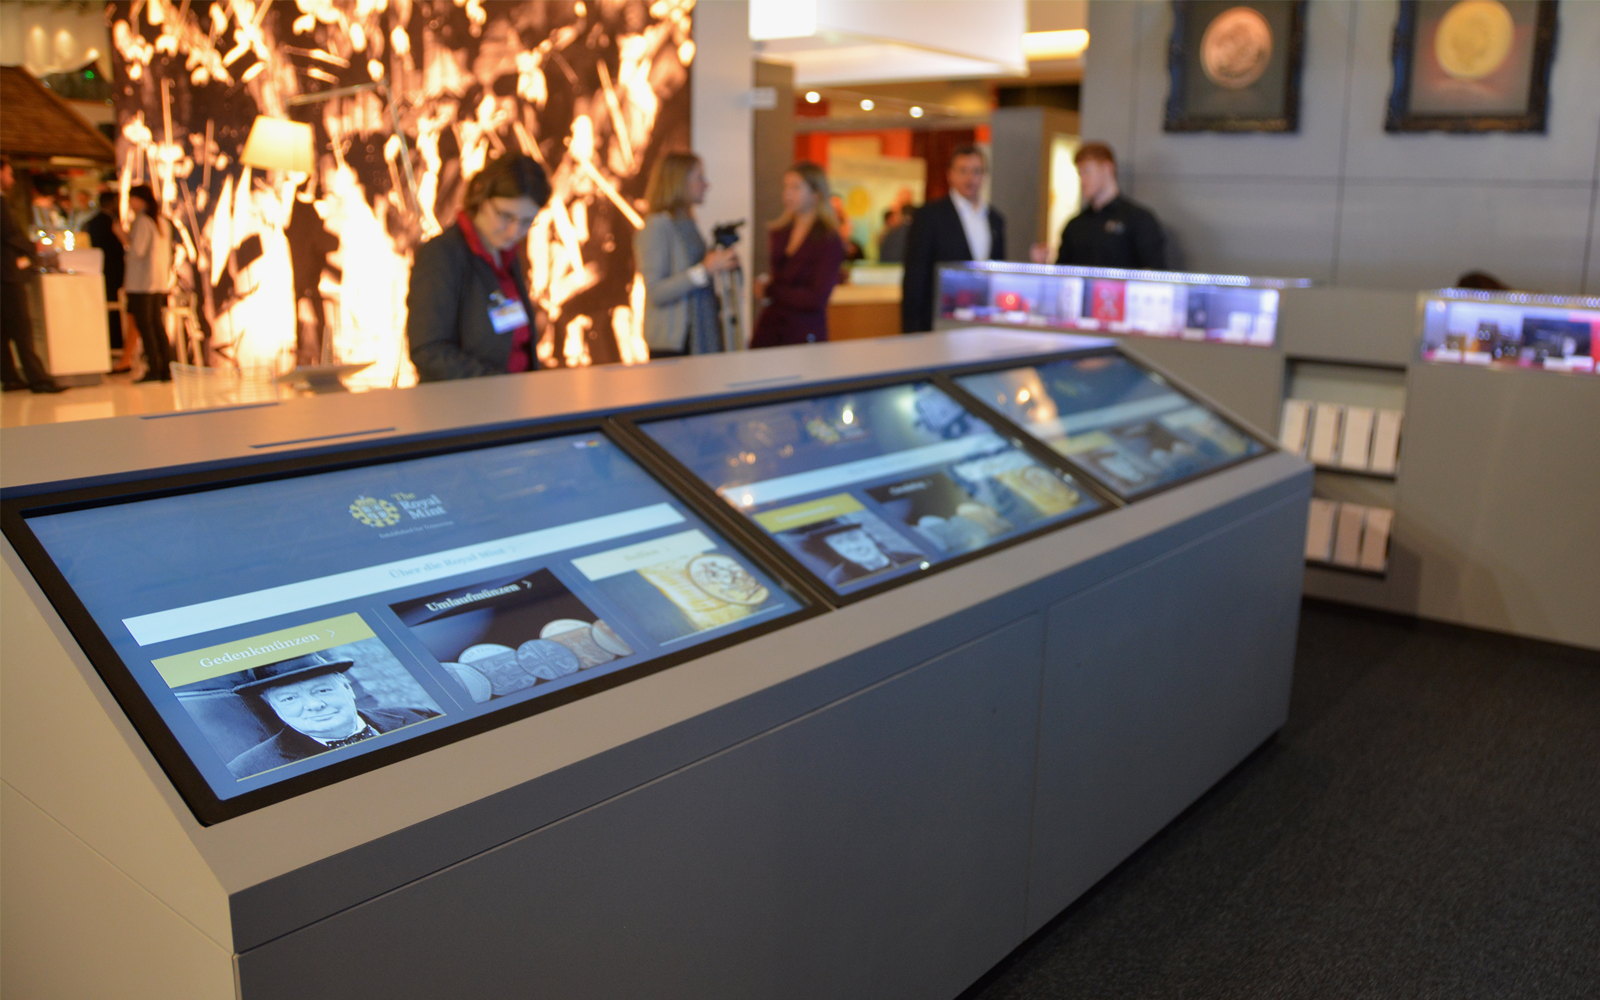 The Royal Mint interactive display software displayed on 3 large monitors